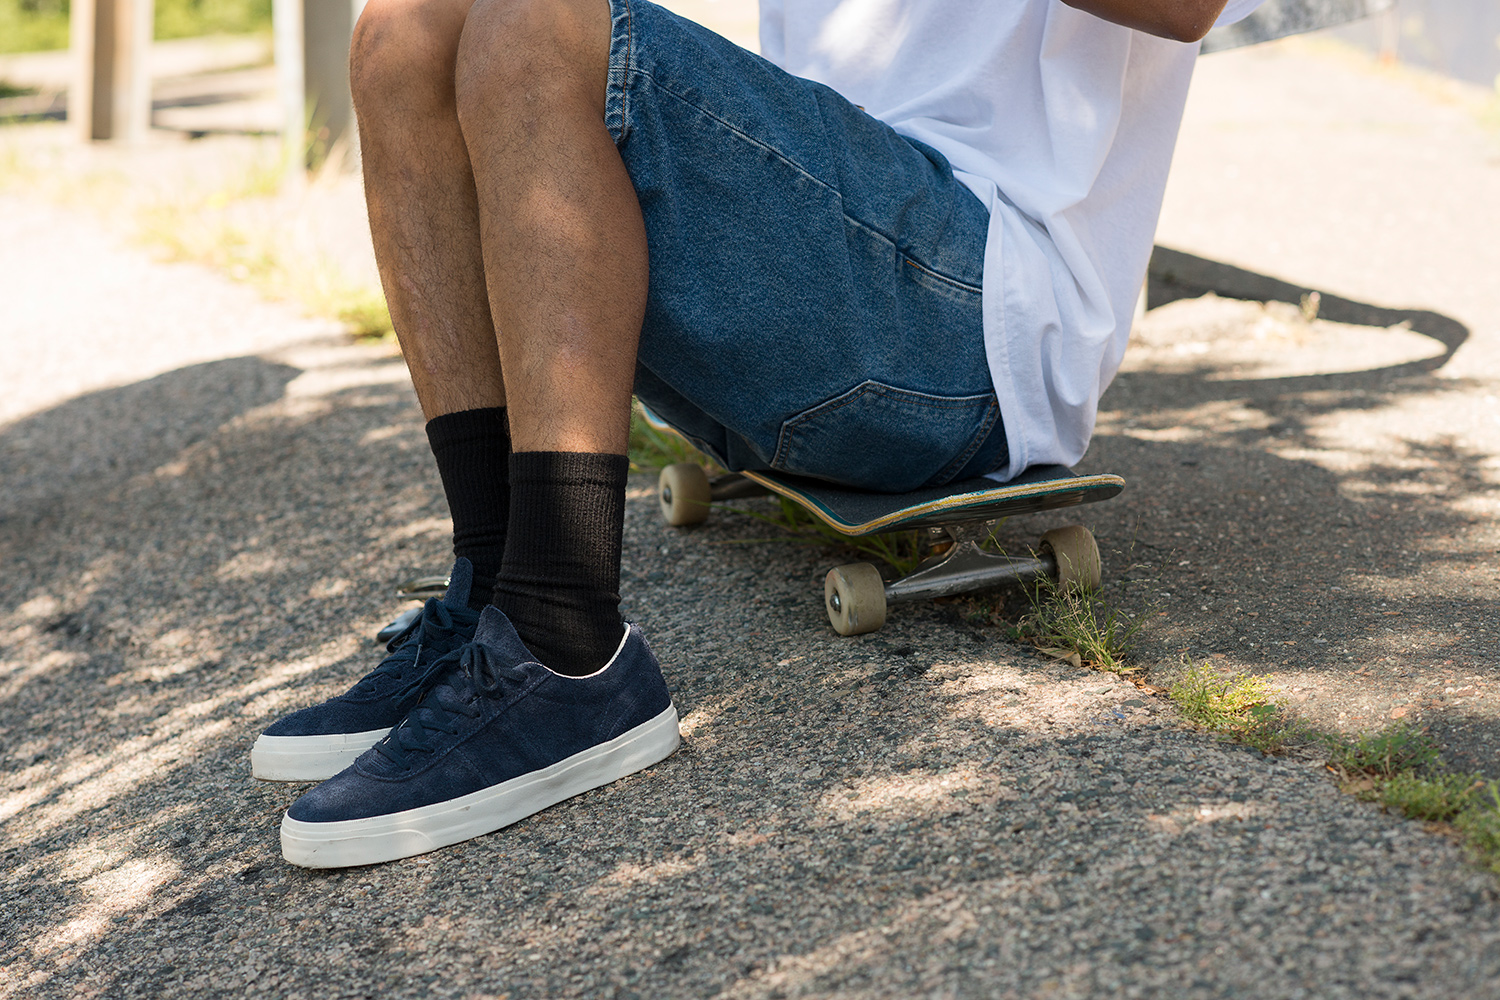 8b1213f18462 Converse One Star Pro by Sage Elsesser